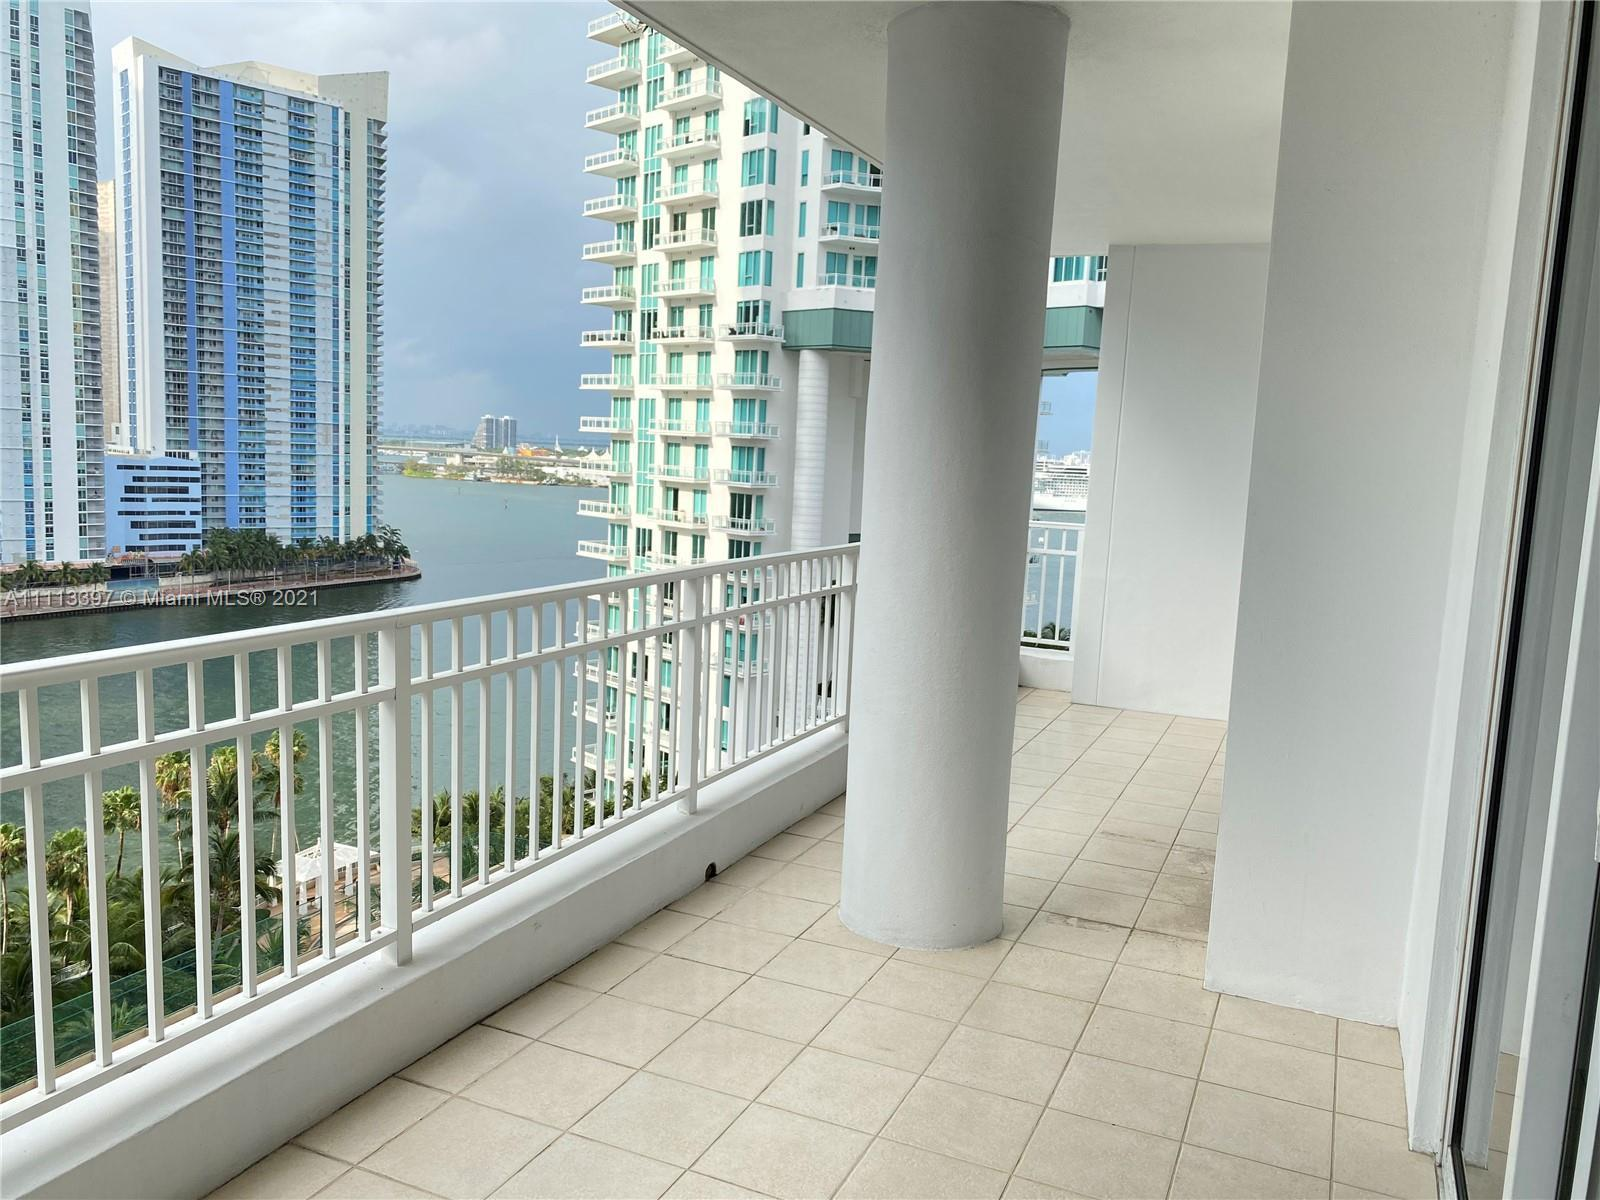 Beautiful 2 Beds 2 Baths with water and skyline views at Court Brickell  in the exclusive Brickell K